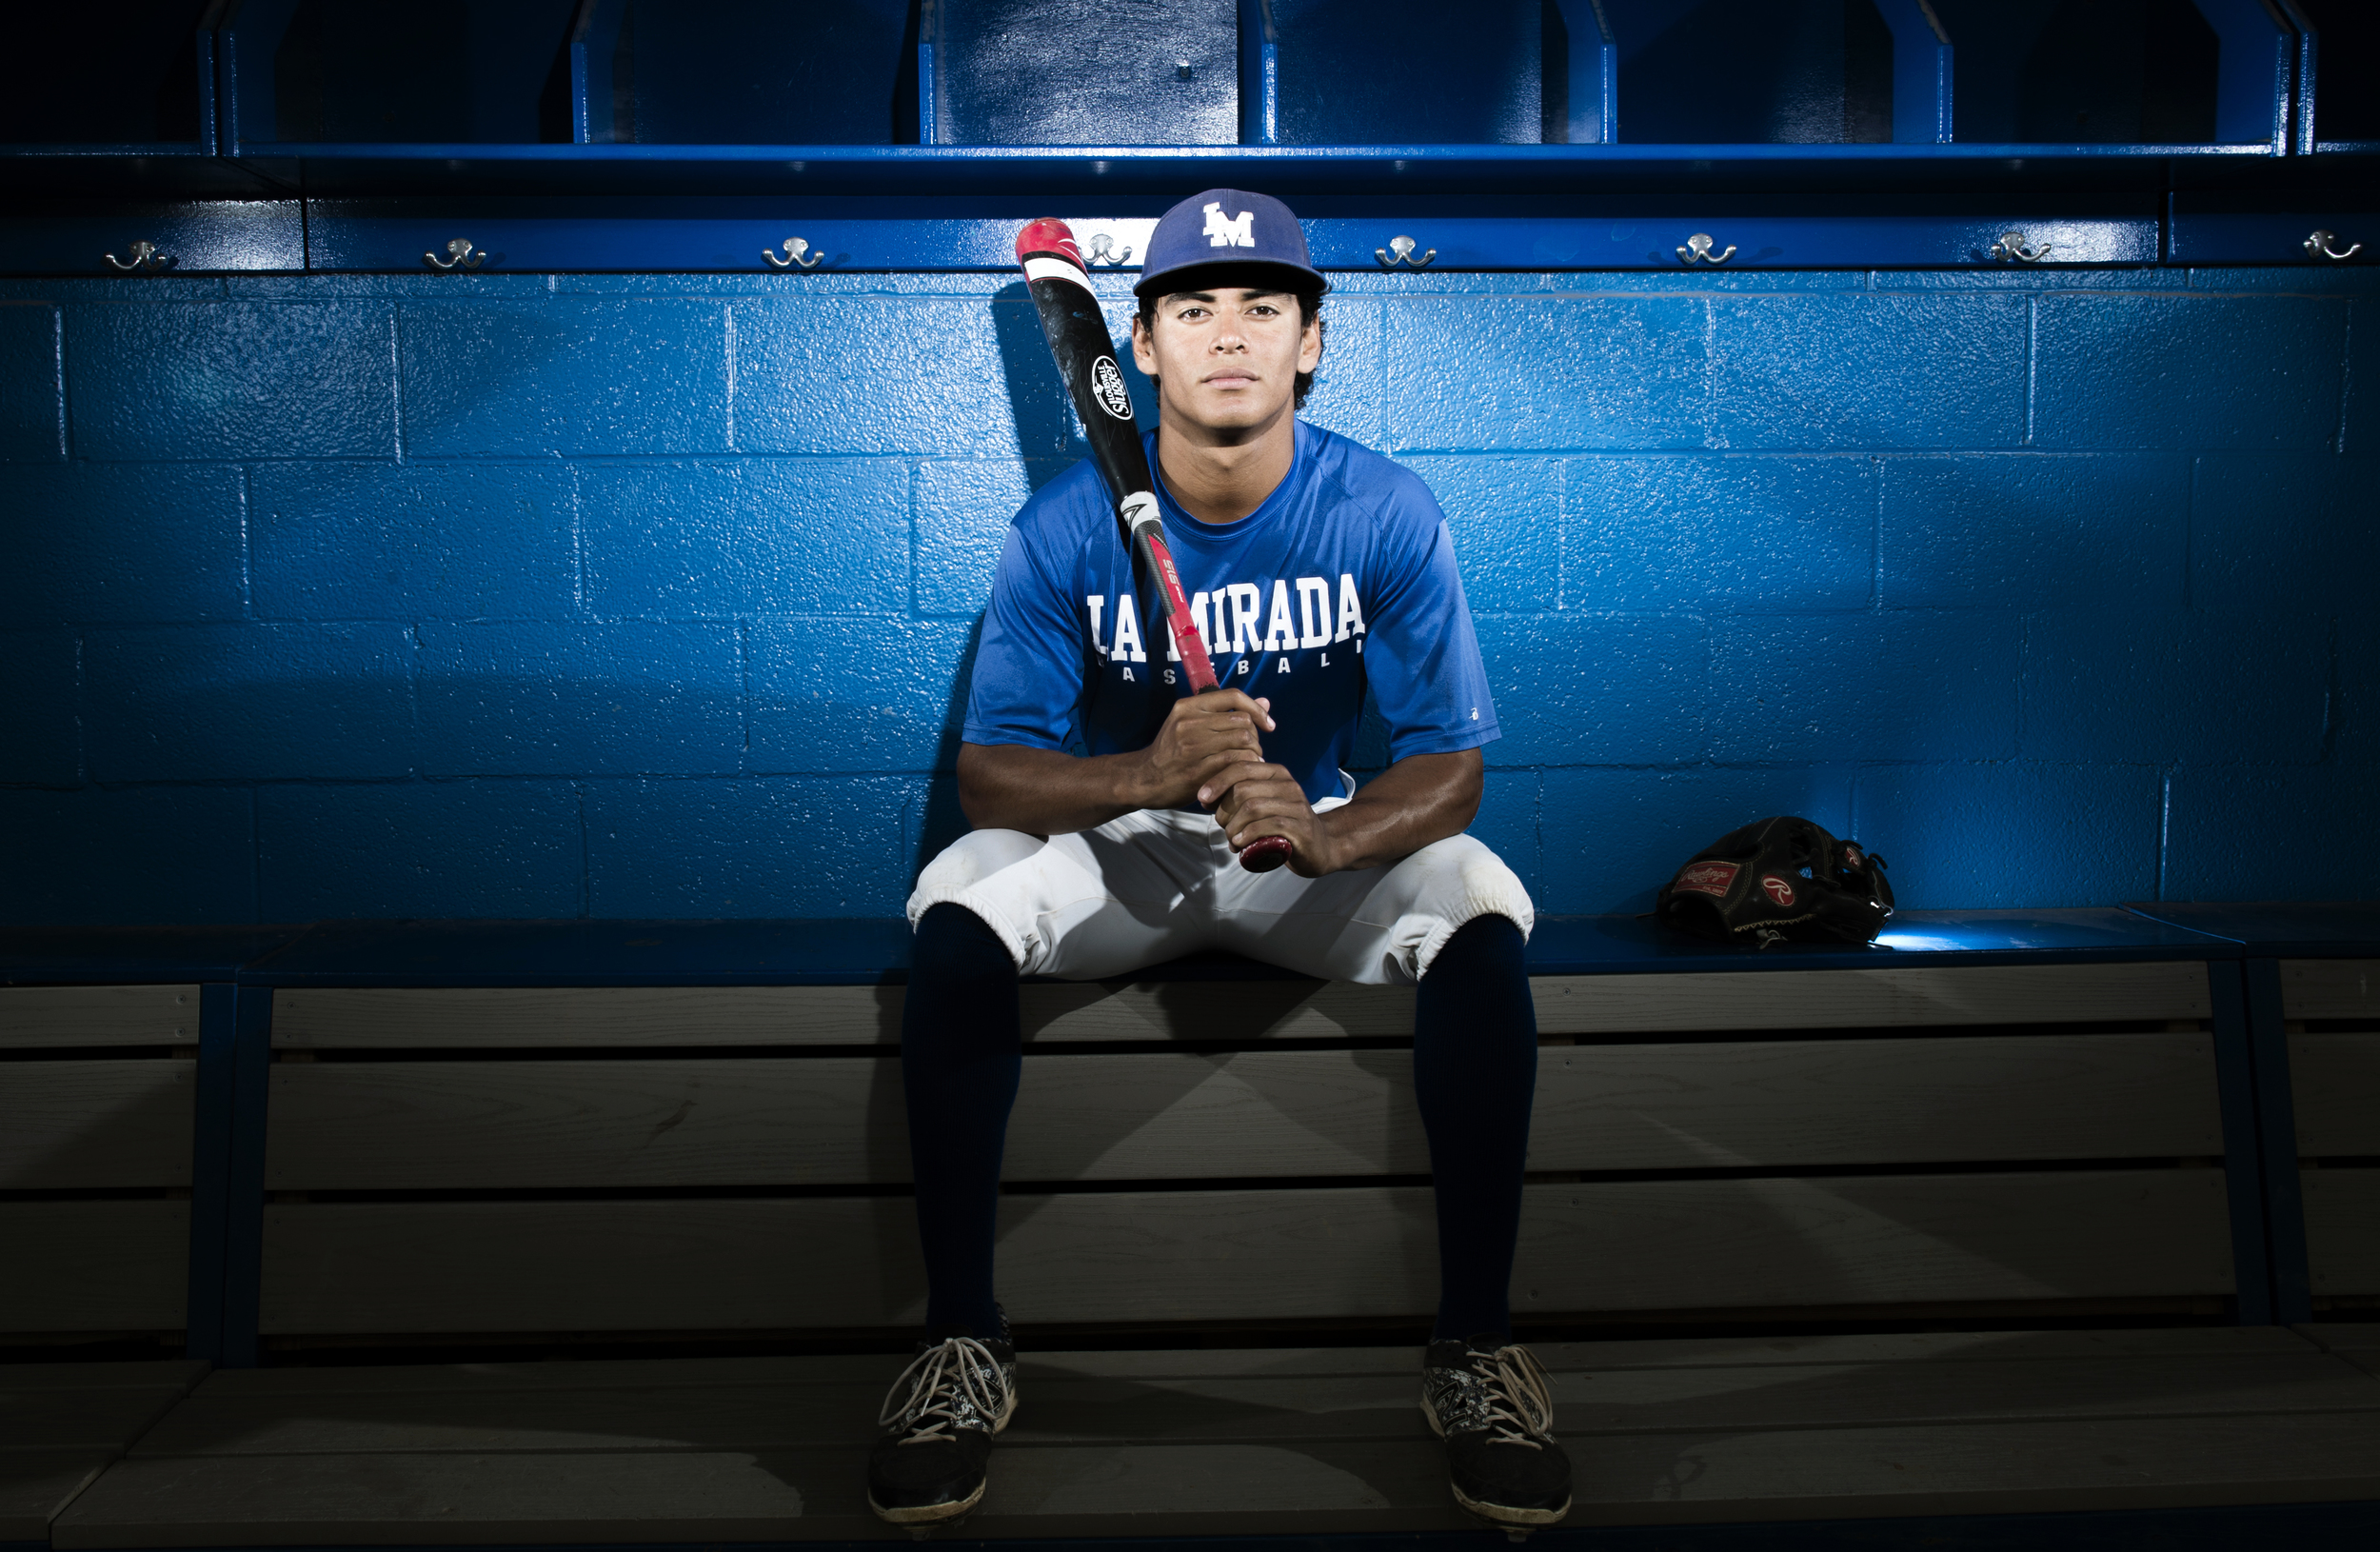 University of Hawaii bound Ethan Lopez is La Mirada captain and one of area's top players in La Mirada, CA. Thursday May 12, 2015.